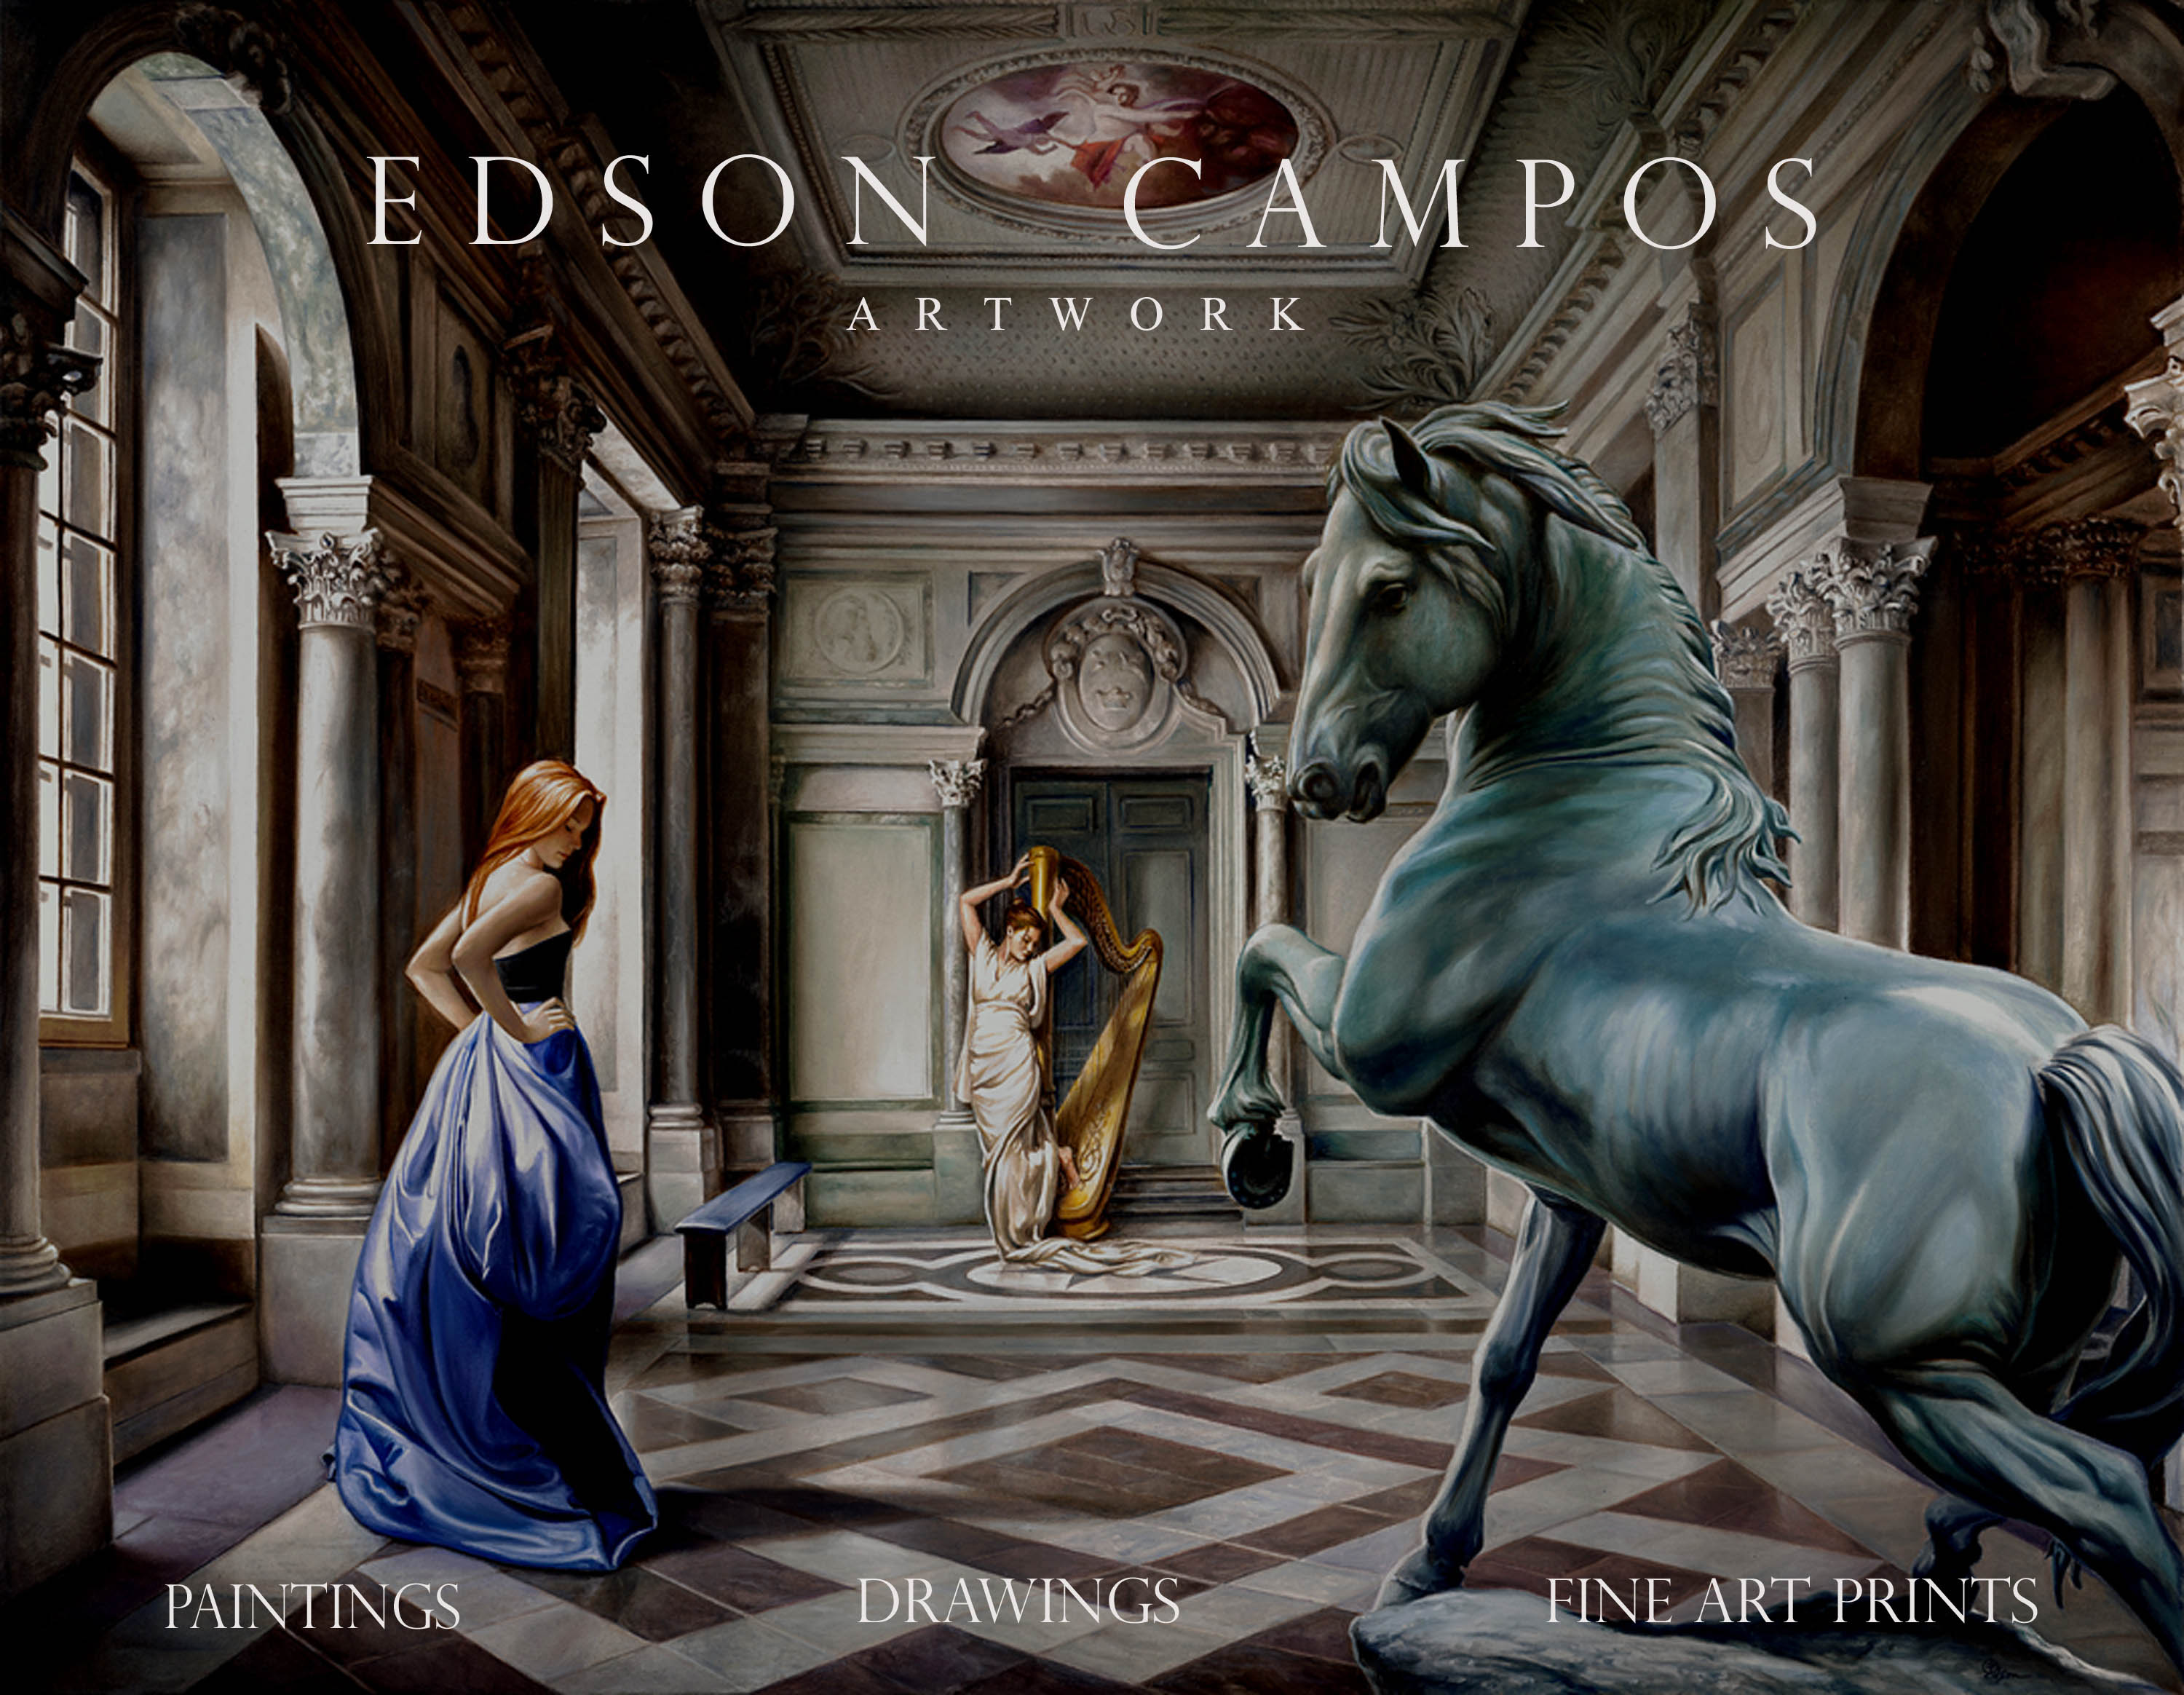 Edson Campos artist welcome to the official website